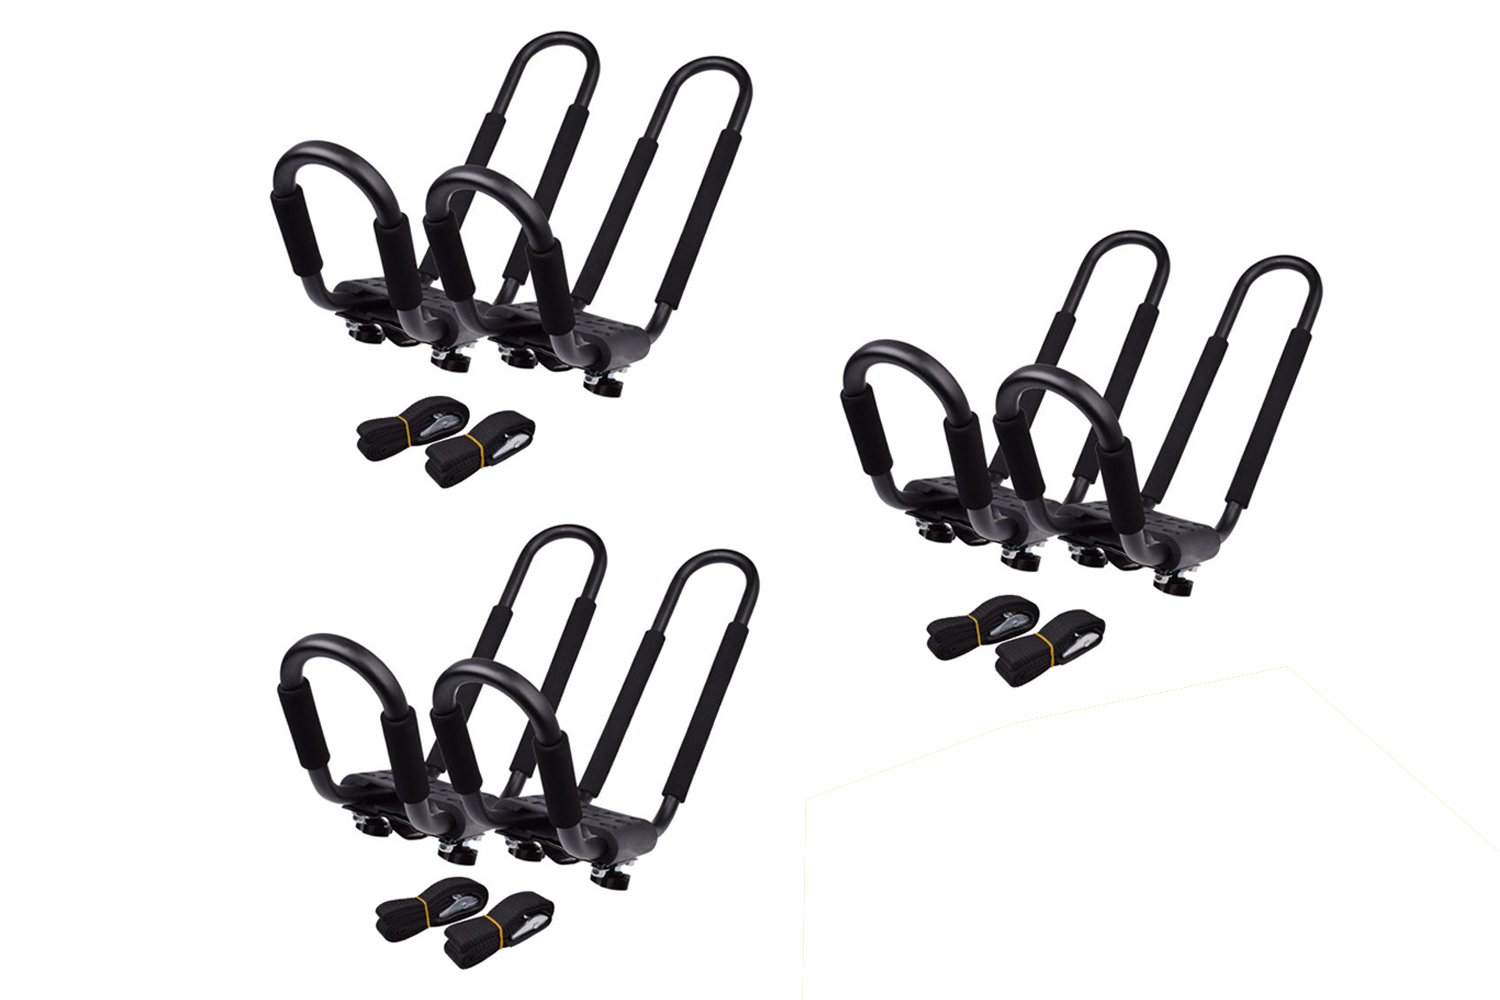 TMS 3 SETS ~ J-Bar Rack HD Kayak Carrier Canoe Boat Surf Ski Roof Top Mount Car SUV Crossbar